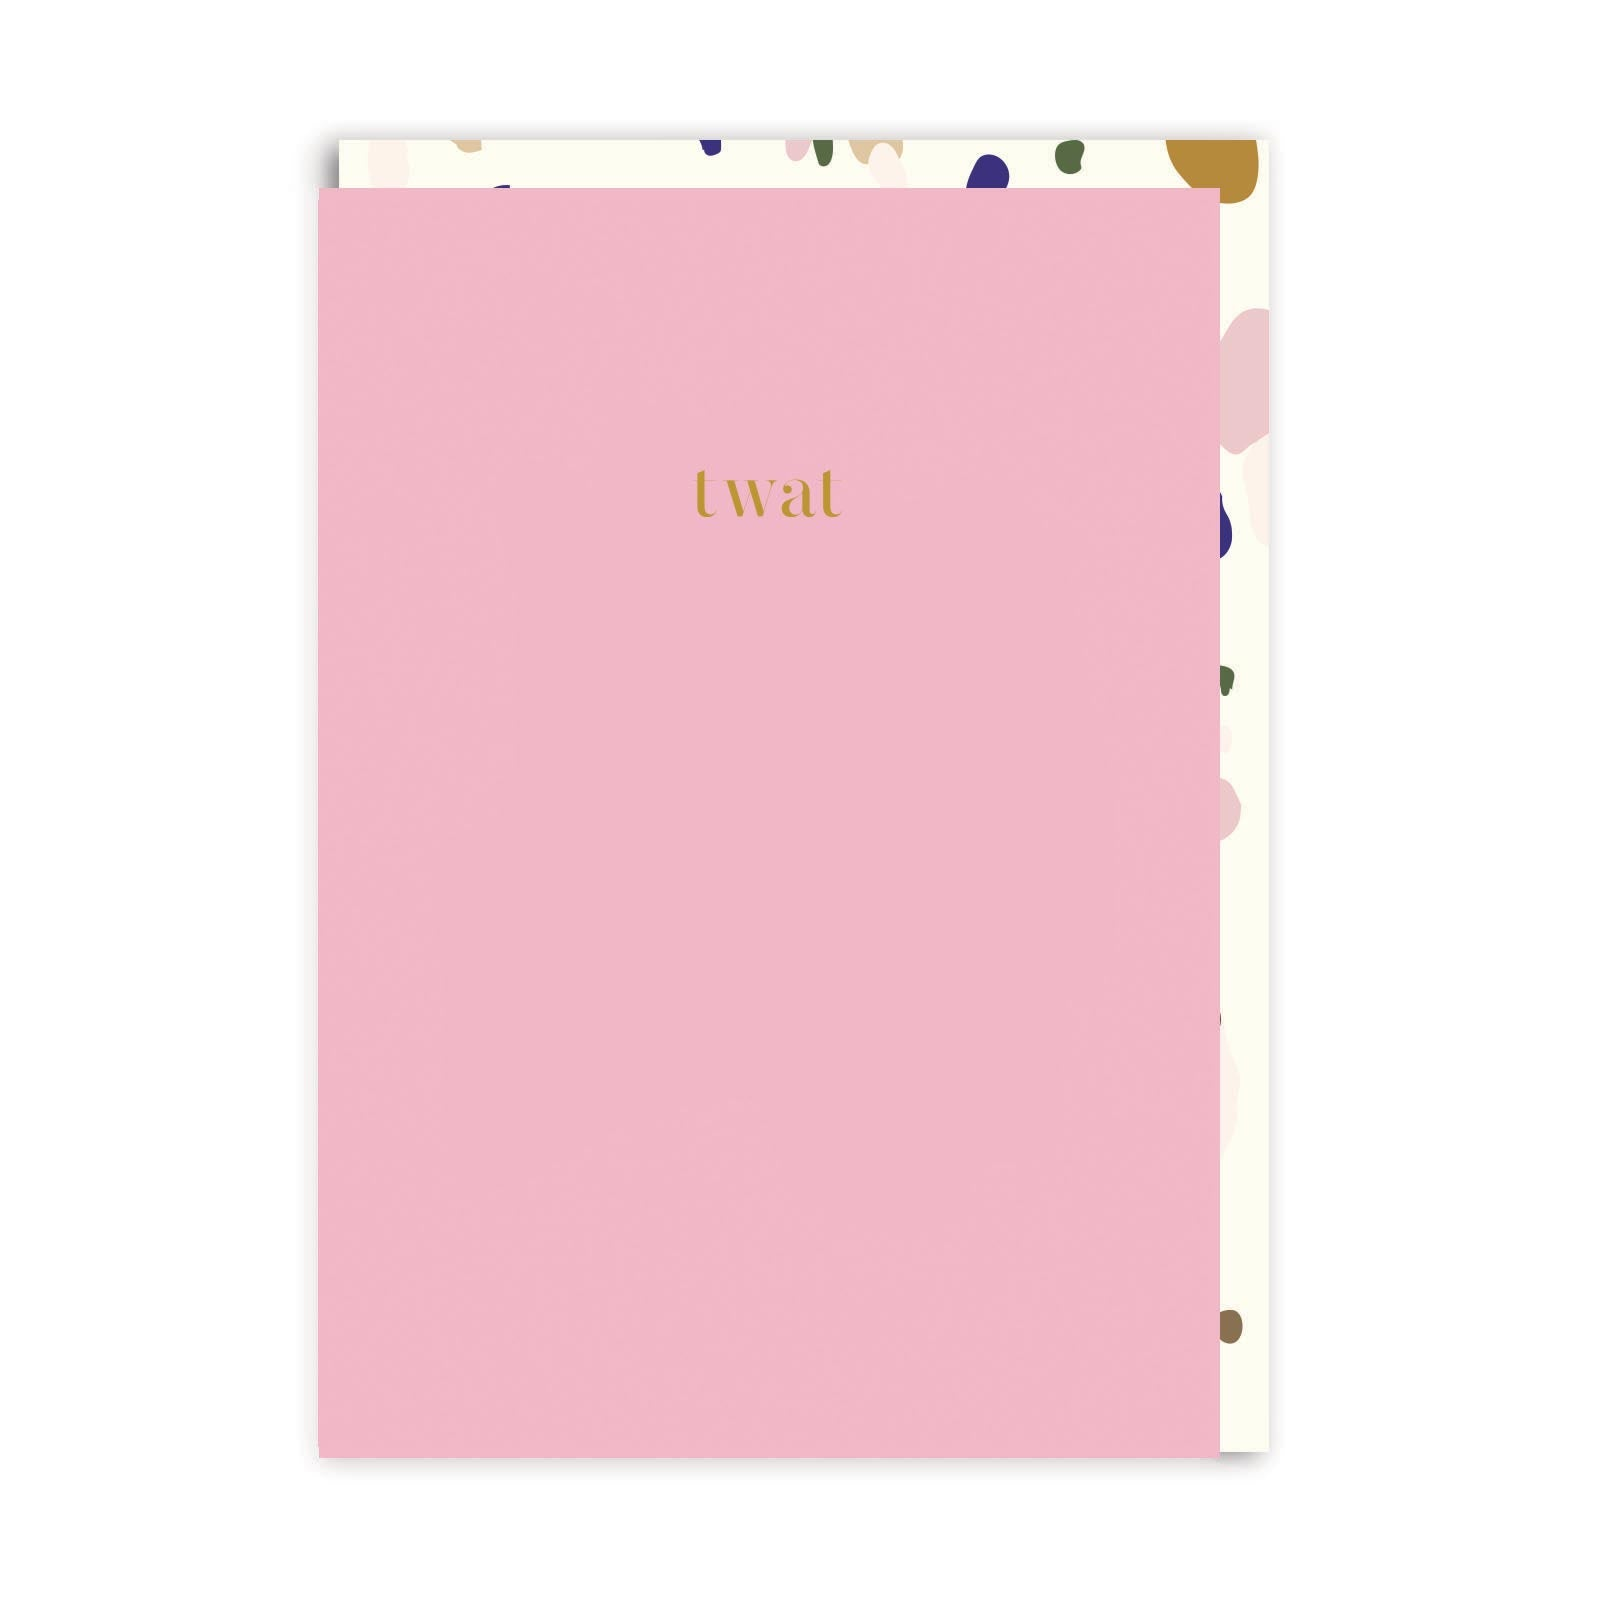 Twat Greeting Card